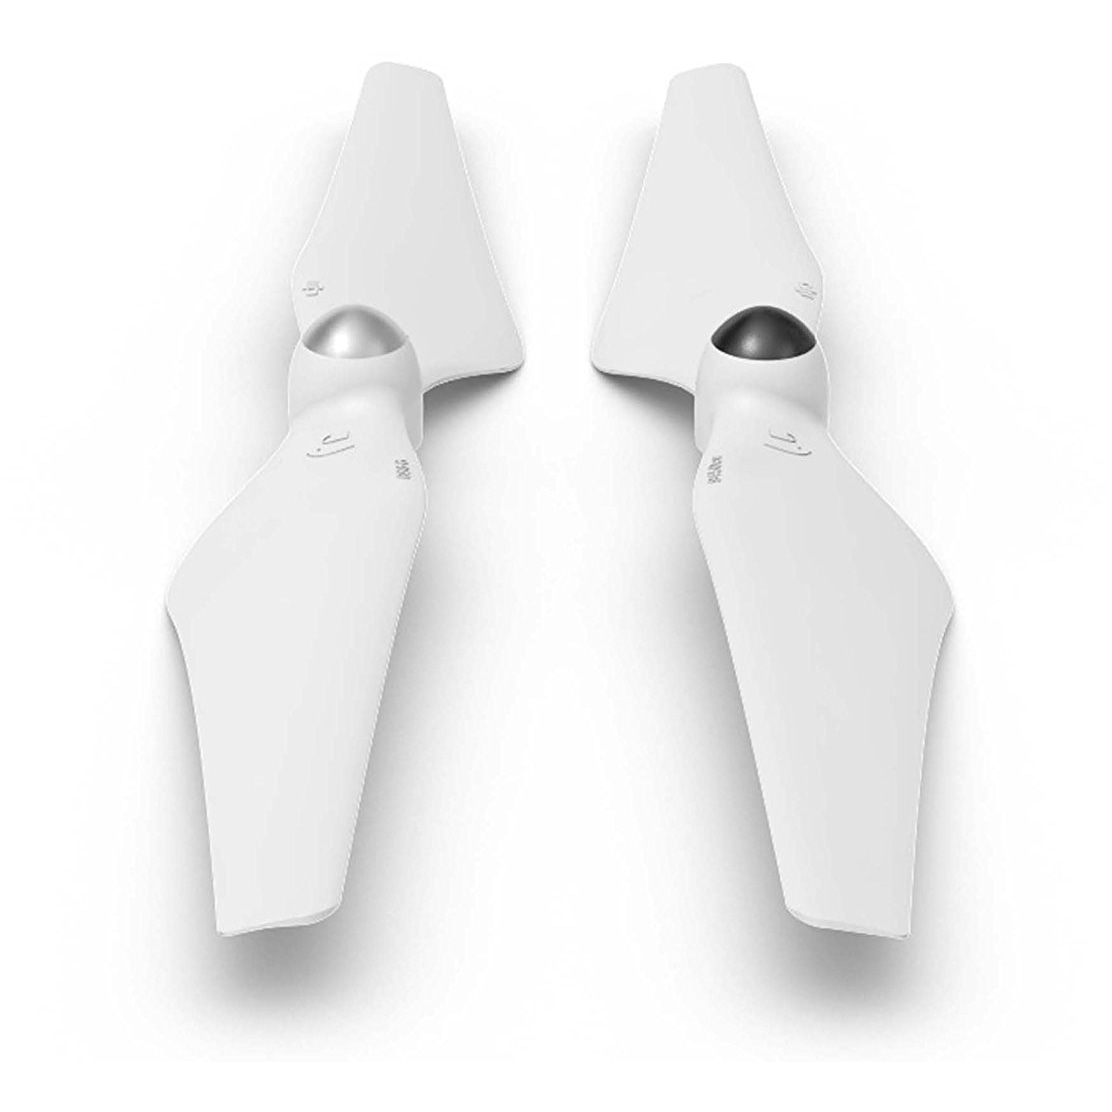 Пропеллеры 9450 для Phantom 3 Self Tightening Propeller-2